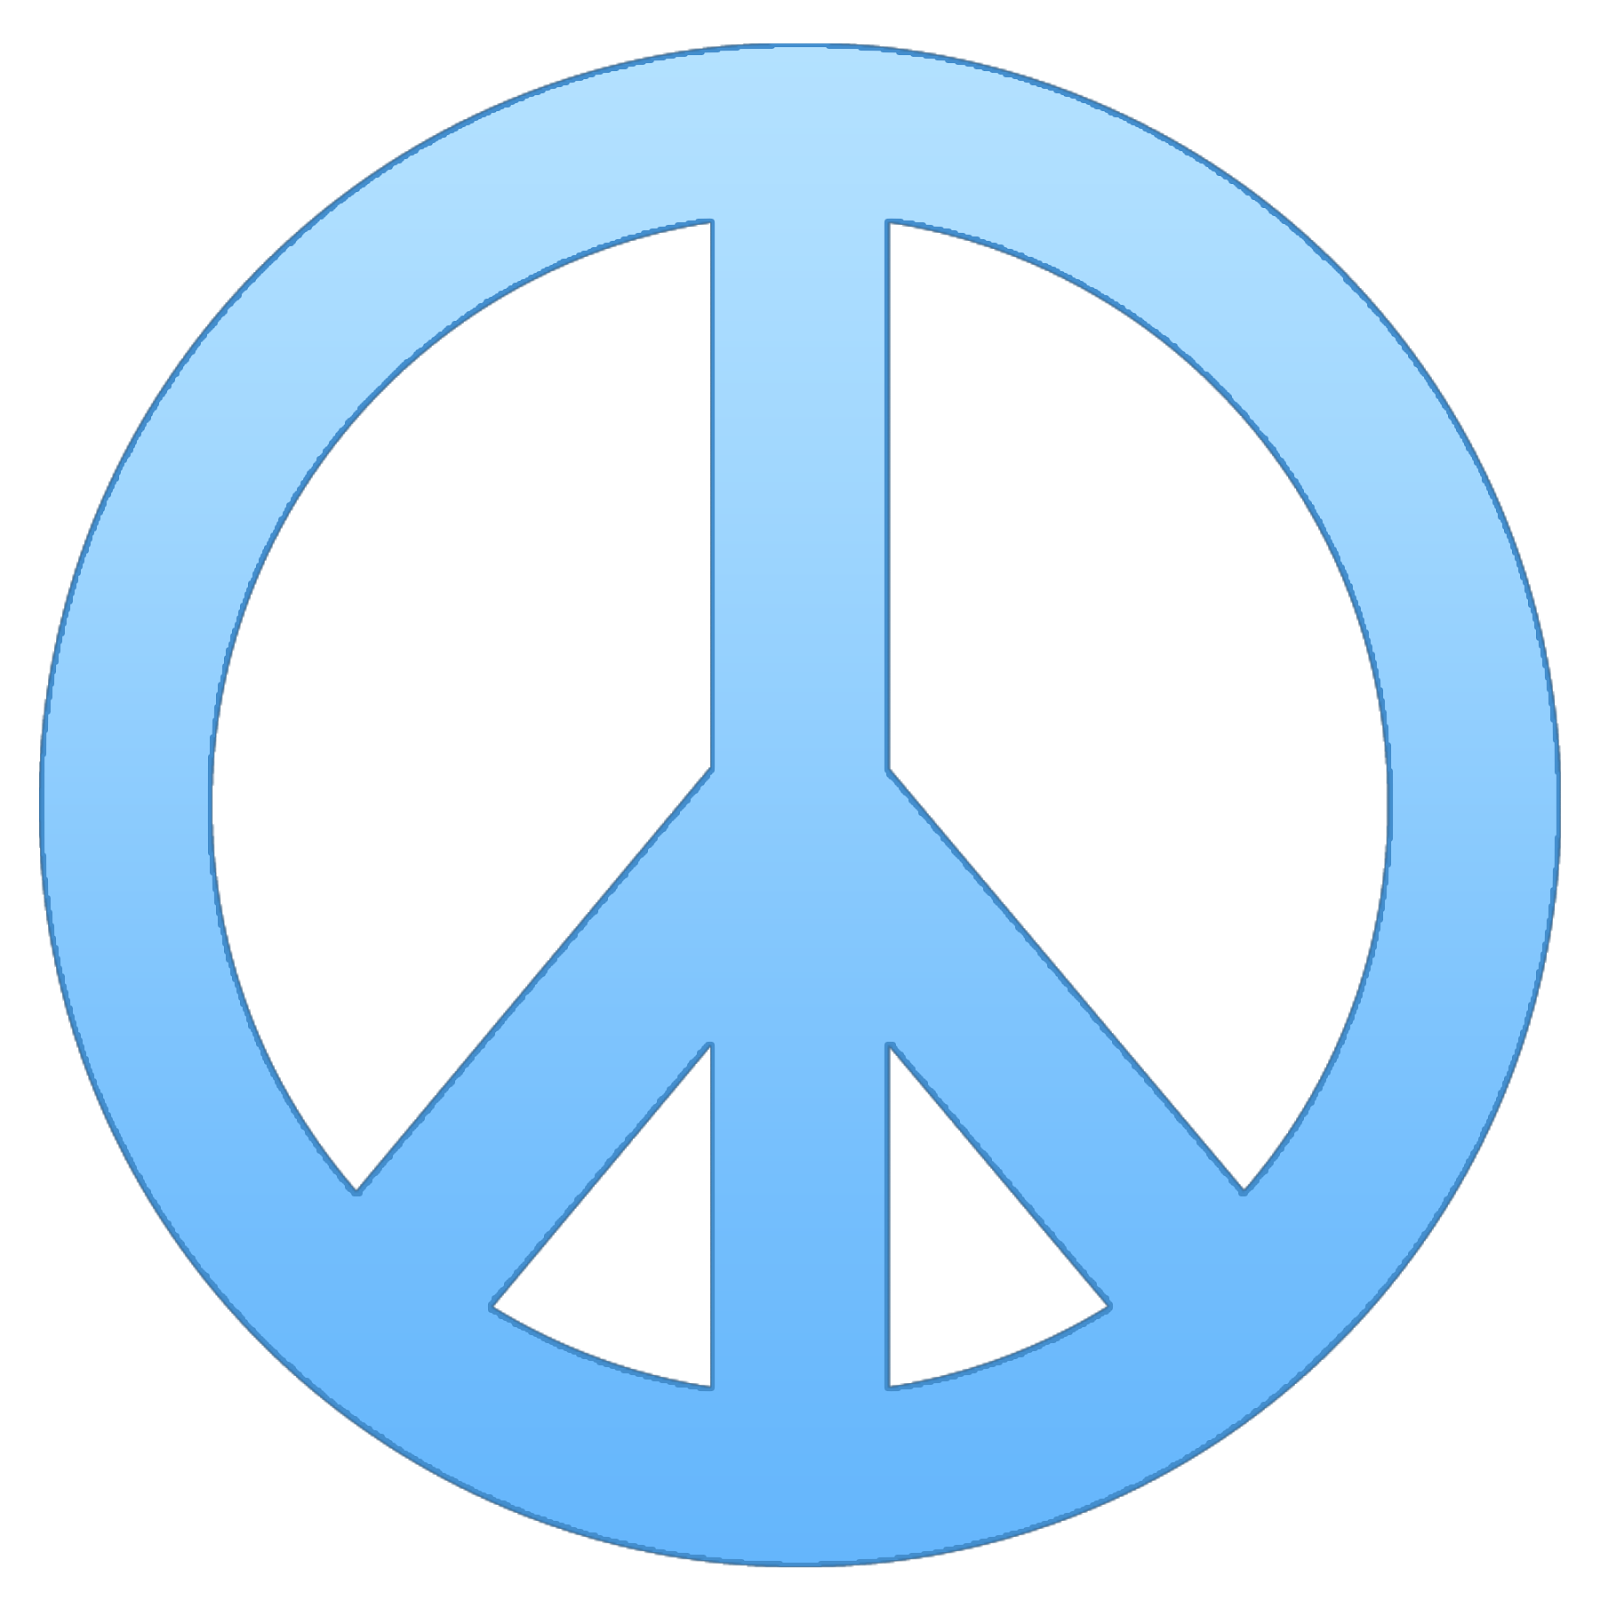 70 images of Peace Sign Template . You can use these free cliparts for ...